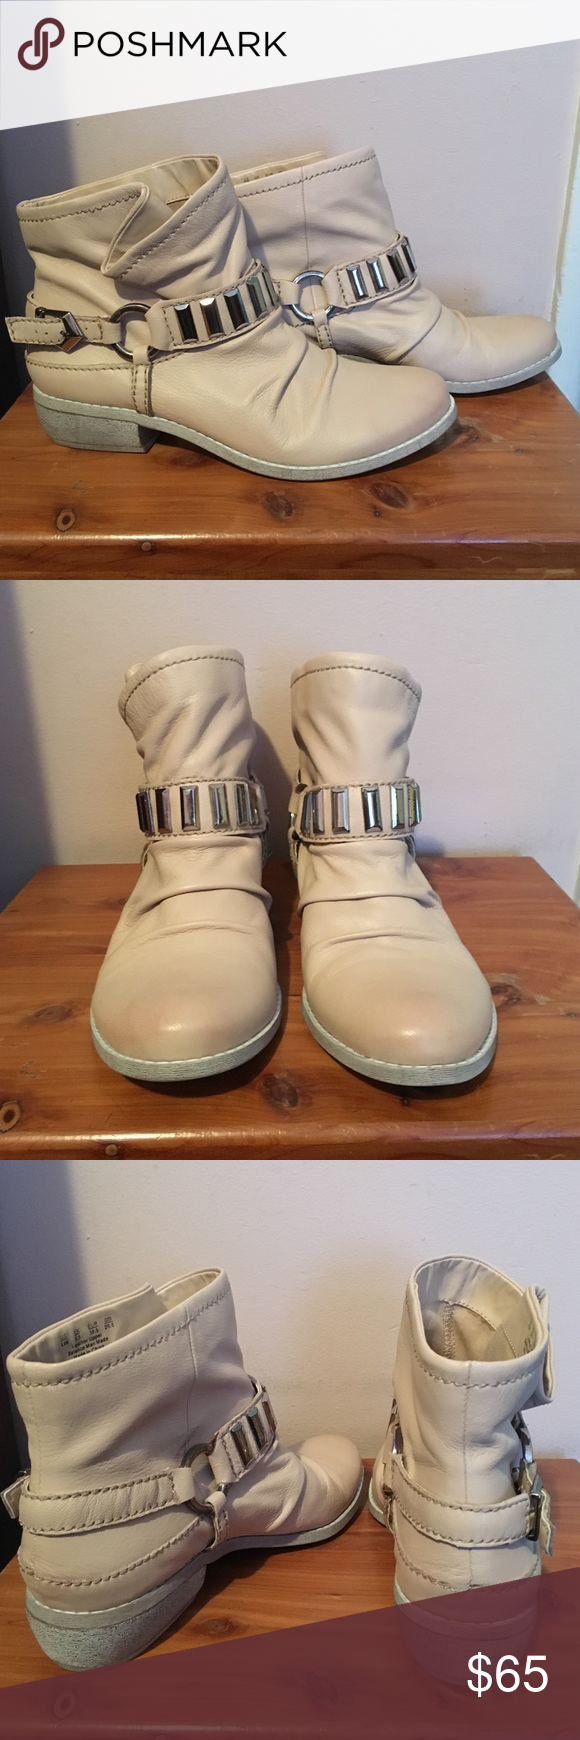 Fergie leather booties Brand new, beige booties never been worn! Fergie Shoes Ankle Boots & Booties